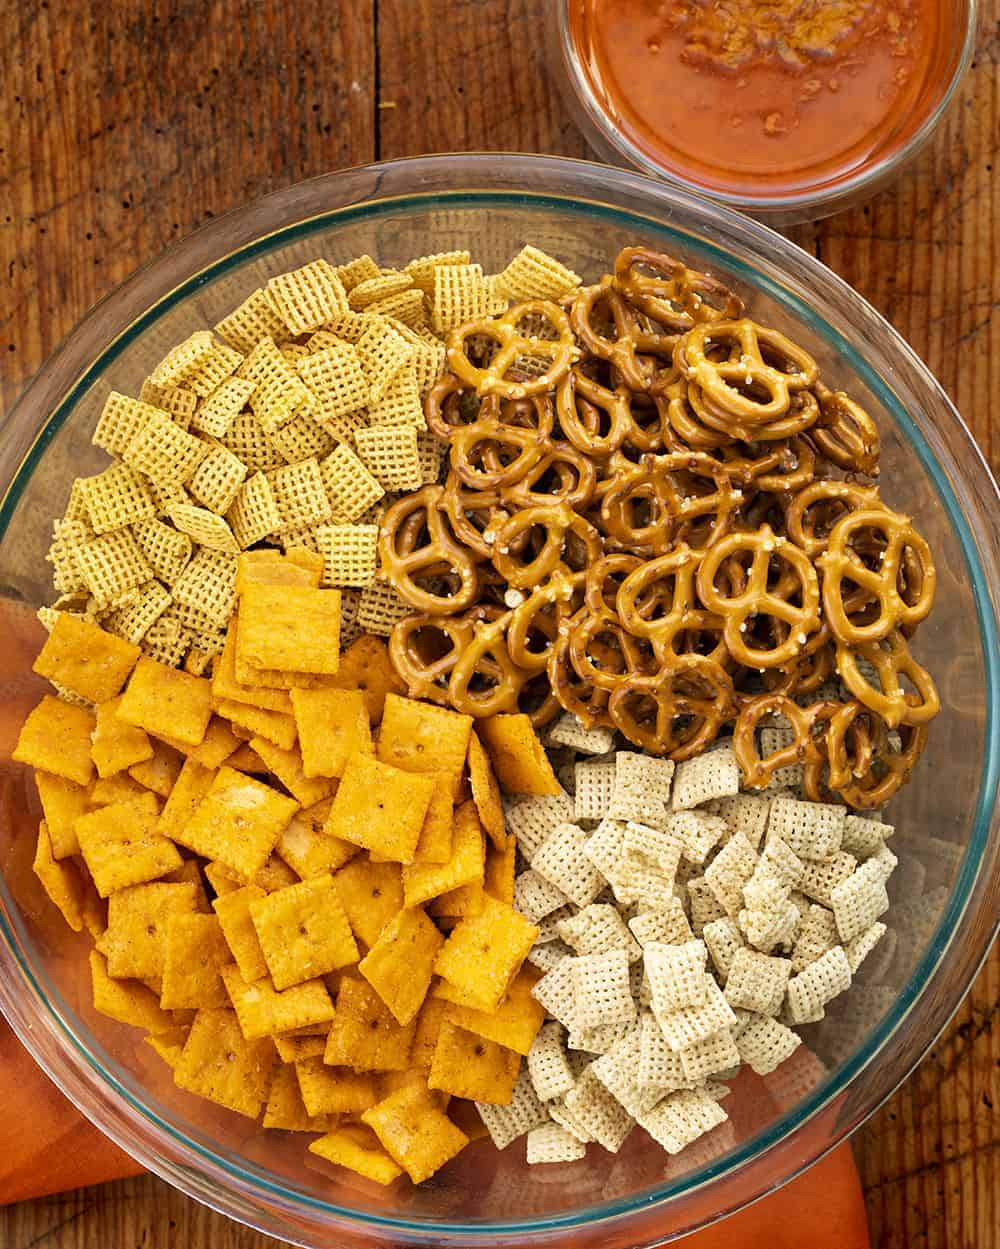 Ingredients for Buffalo Chex Mix